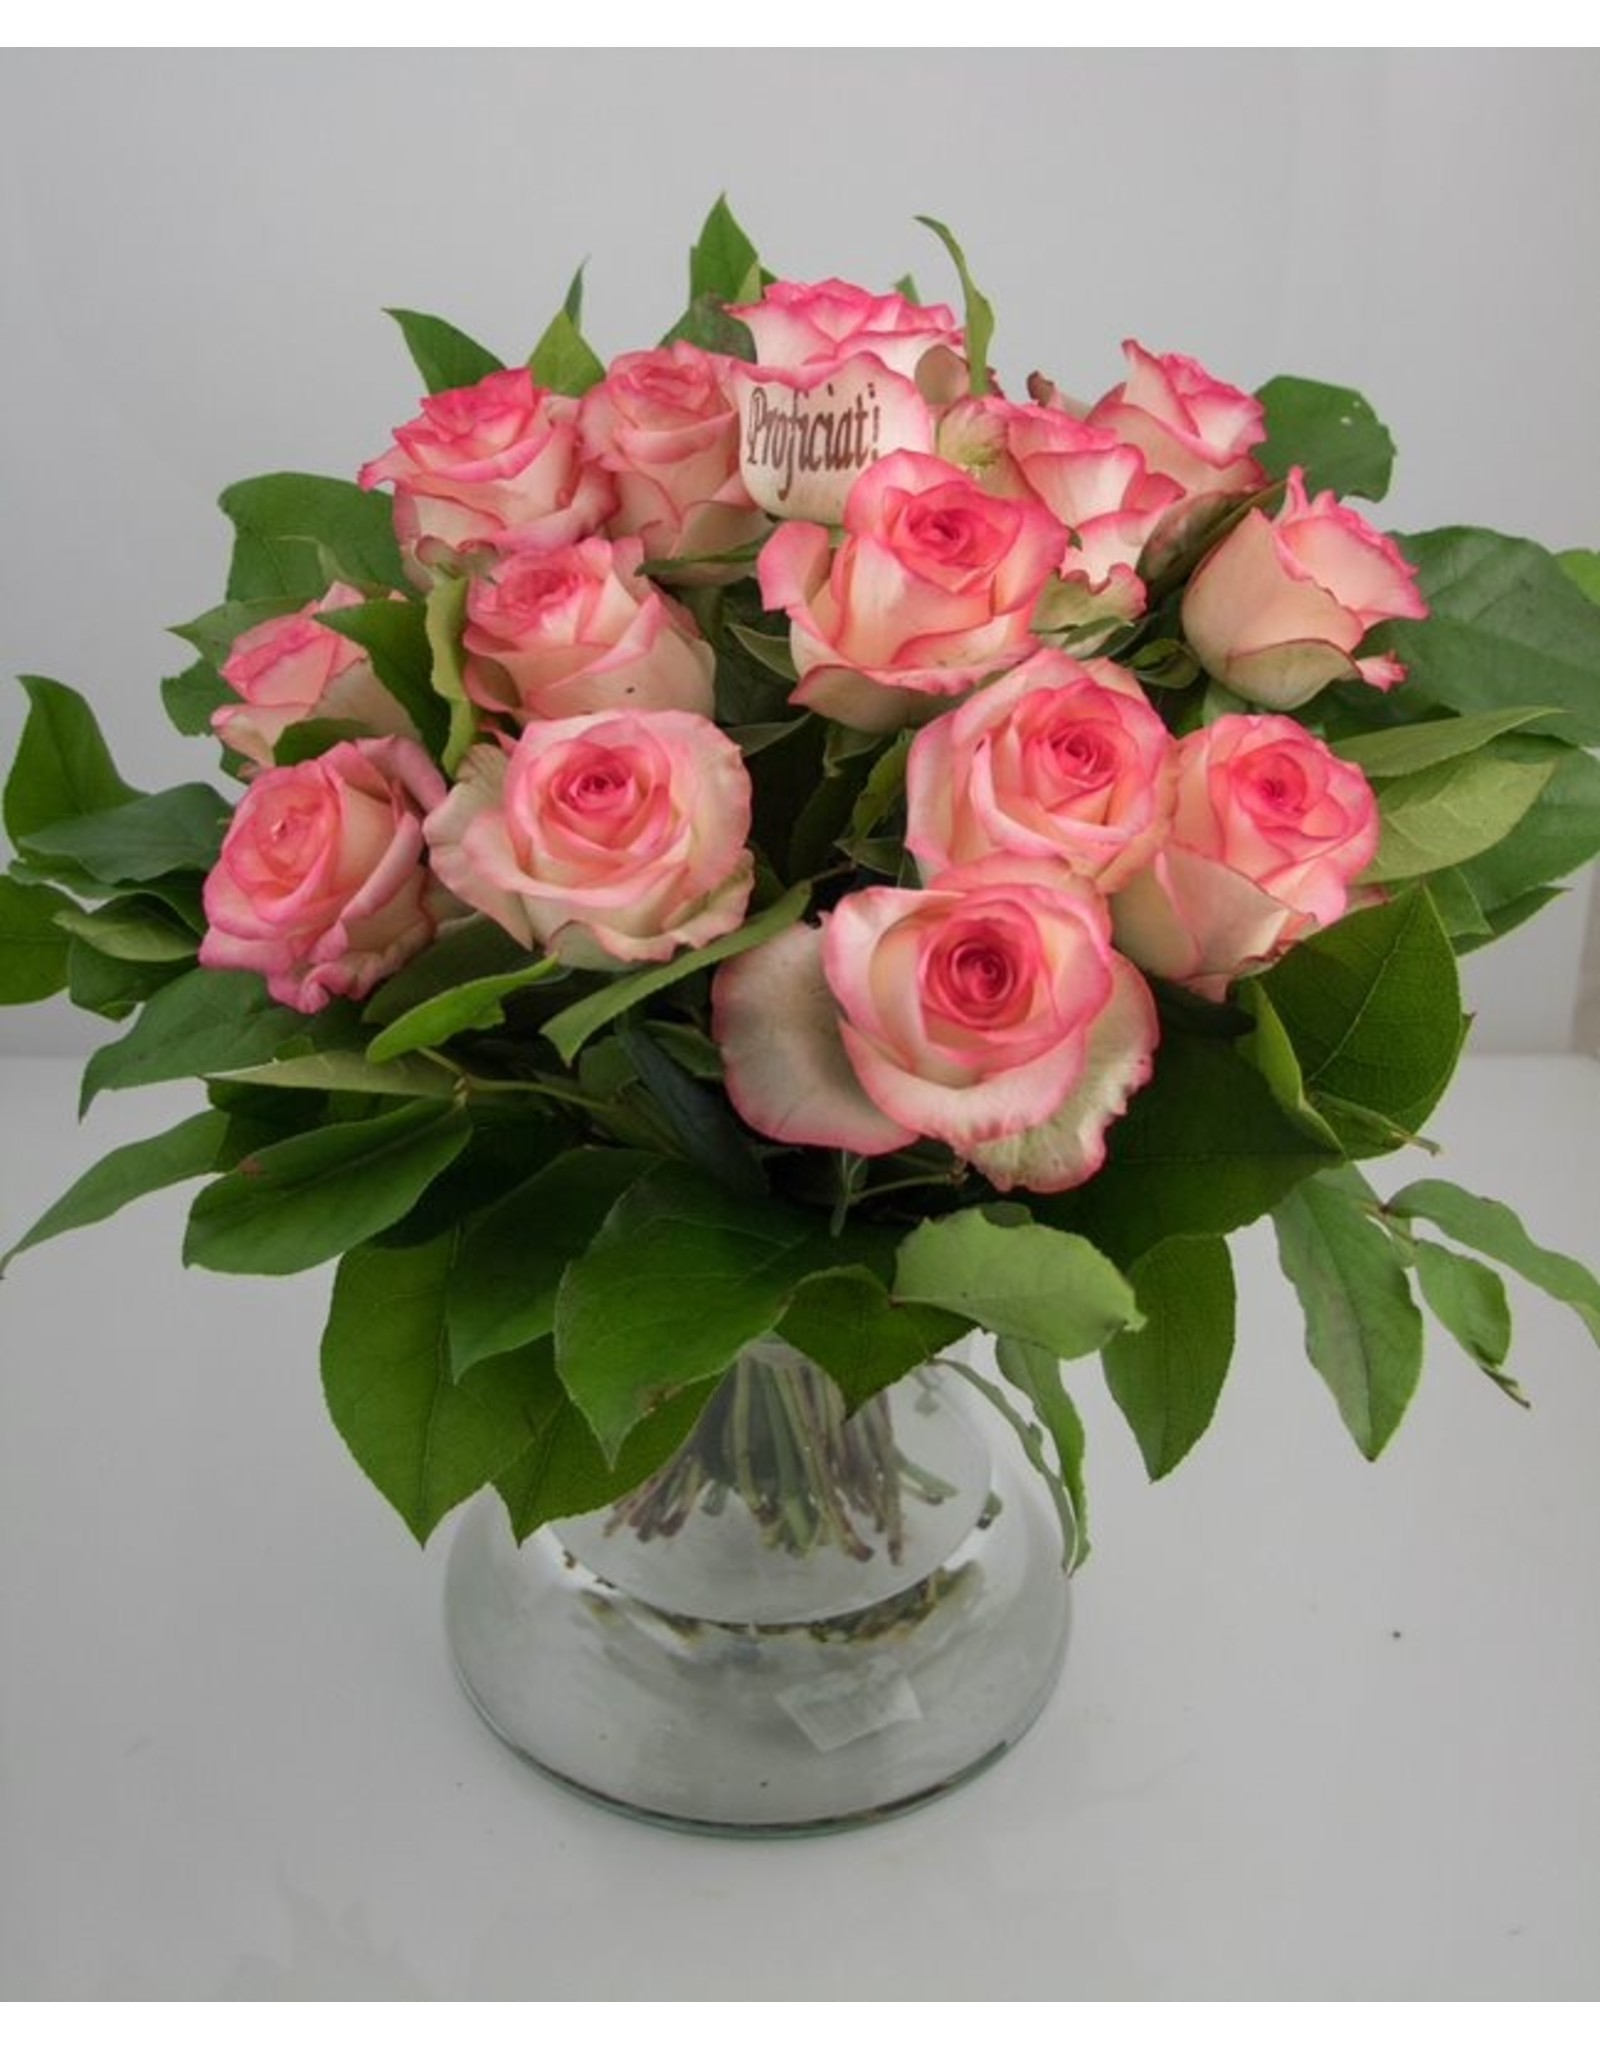 Magic Flowers Boeket 15 rozen - Wit/Roze - Proficiat